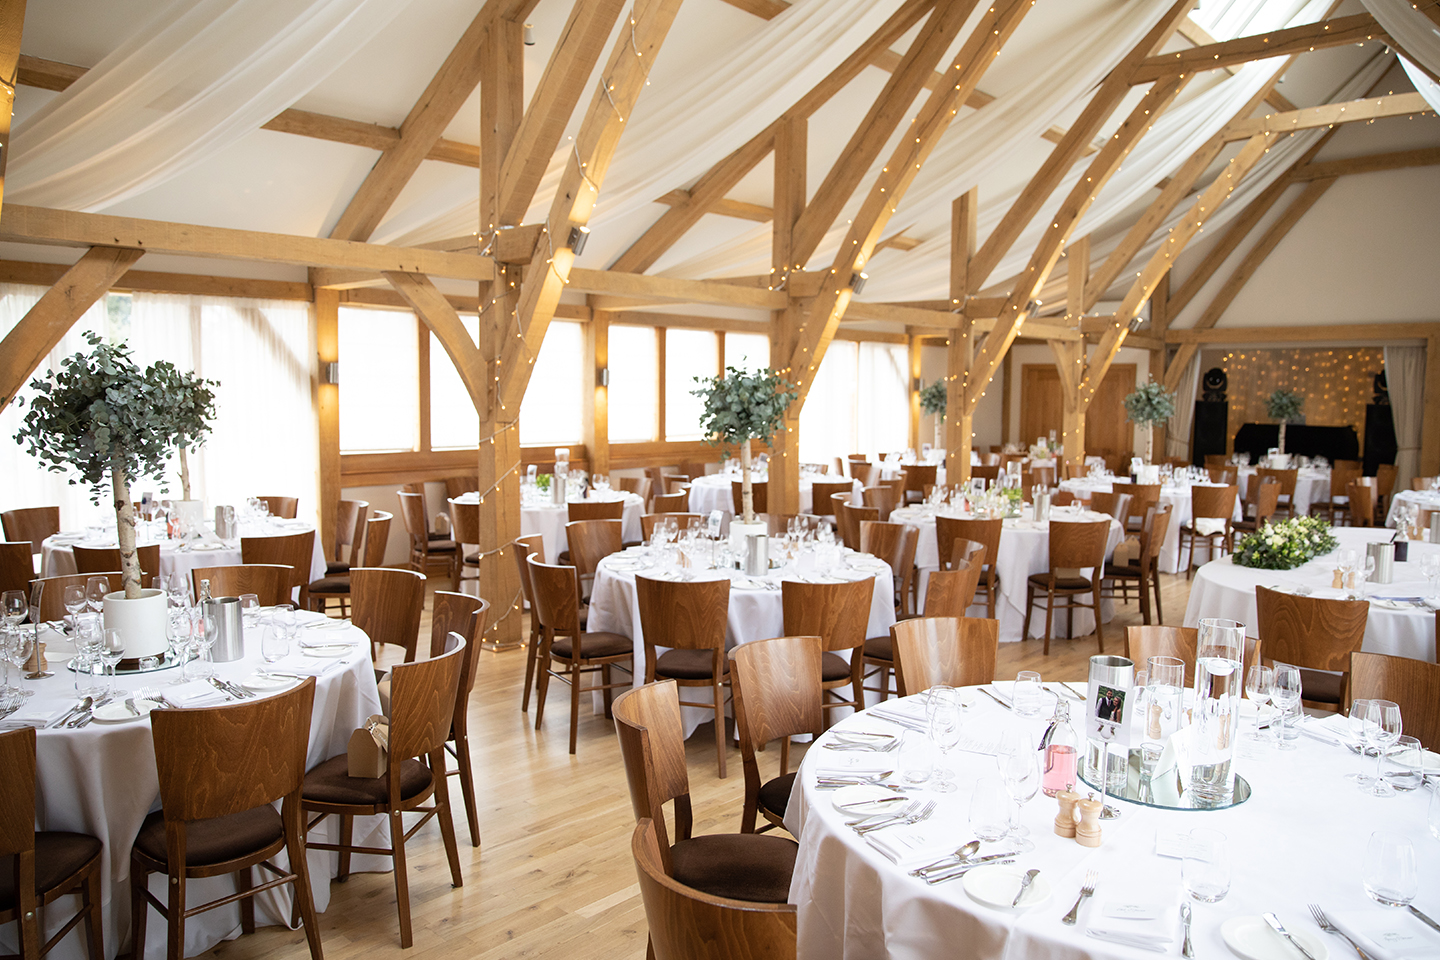 For this spring wedding at Bassmead Manor Barns the Bridge Barn was decorated with eucalyptus trees